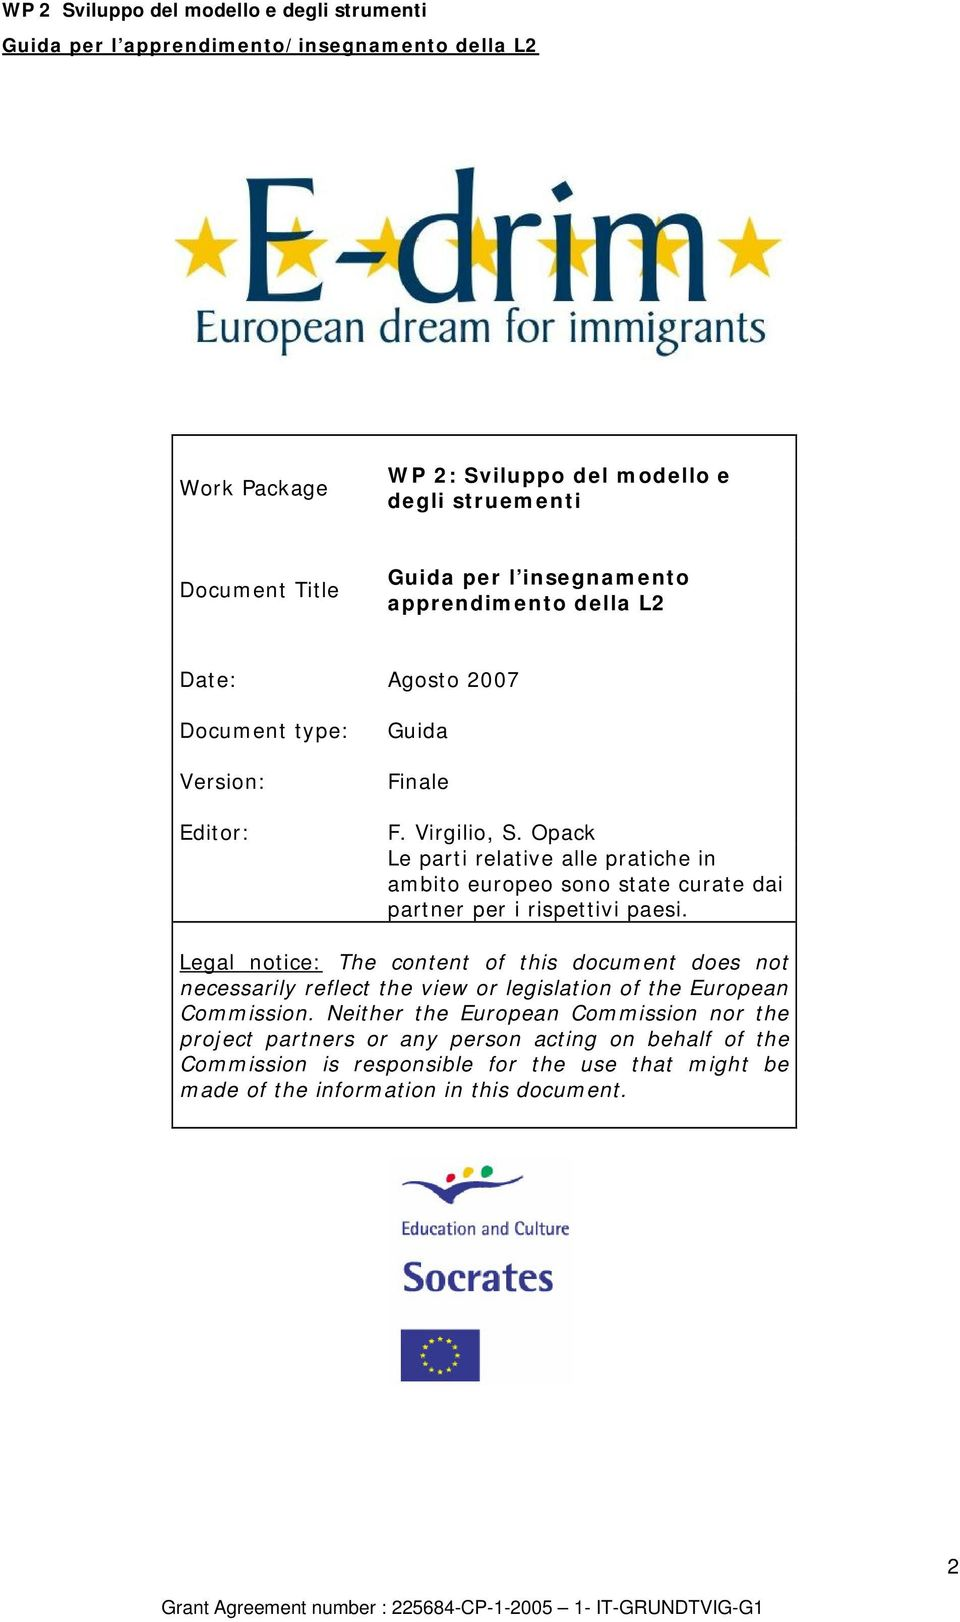 Legal notice: The content of this document does not necessarily reflect the view or legislation of the European Commission.